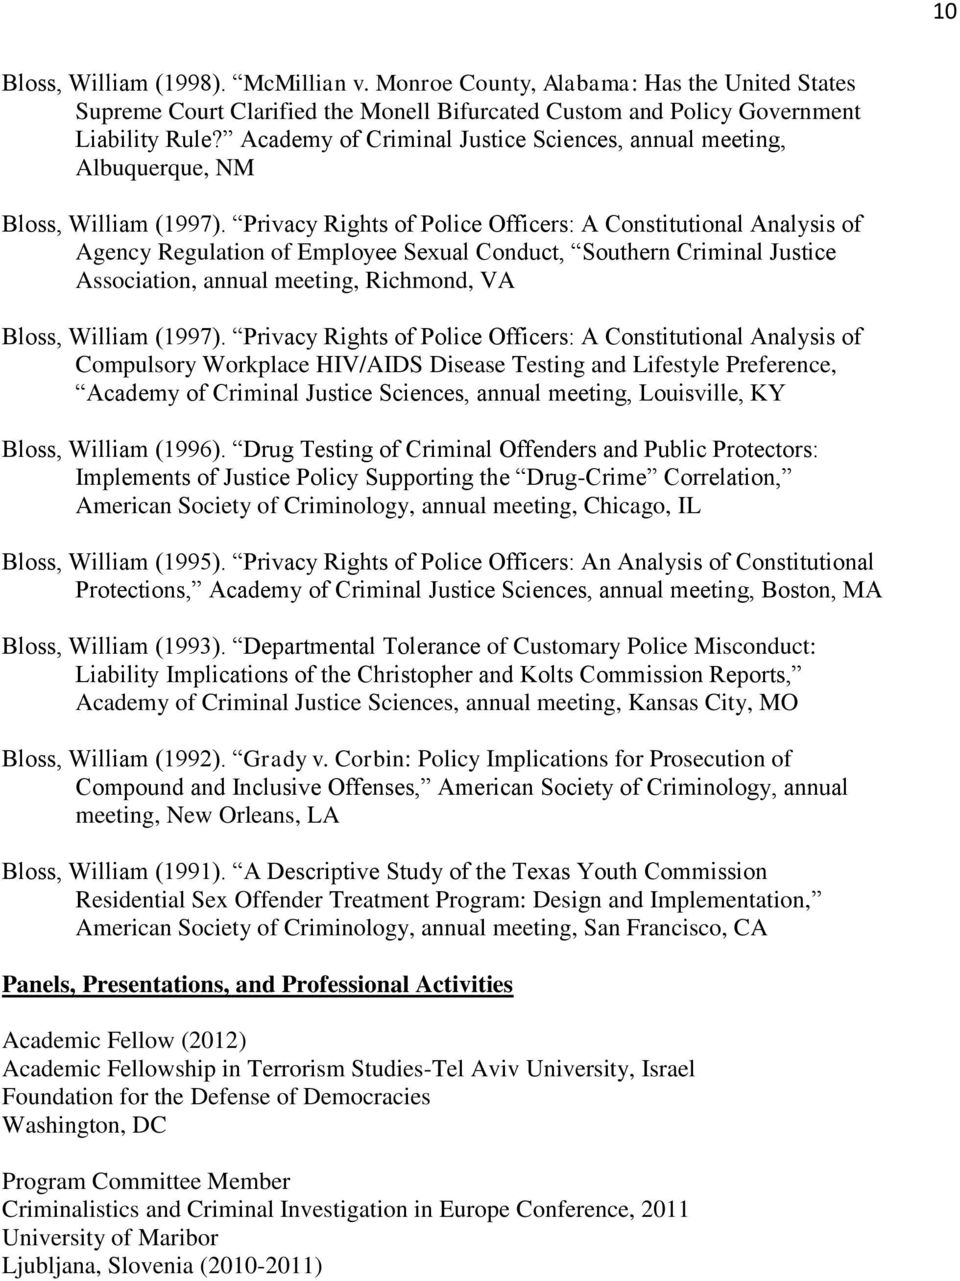 Privacy Rights of Police Officers: A Constitutional Analysis of Agency Regulation of Employee Sexual Conduct, Southern Criminal Justice Association, annual meeting, Richmond, VA Bloss, William (1997).